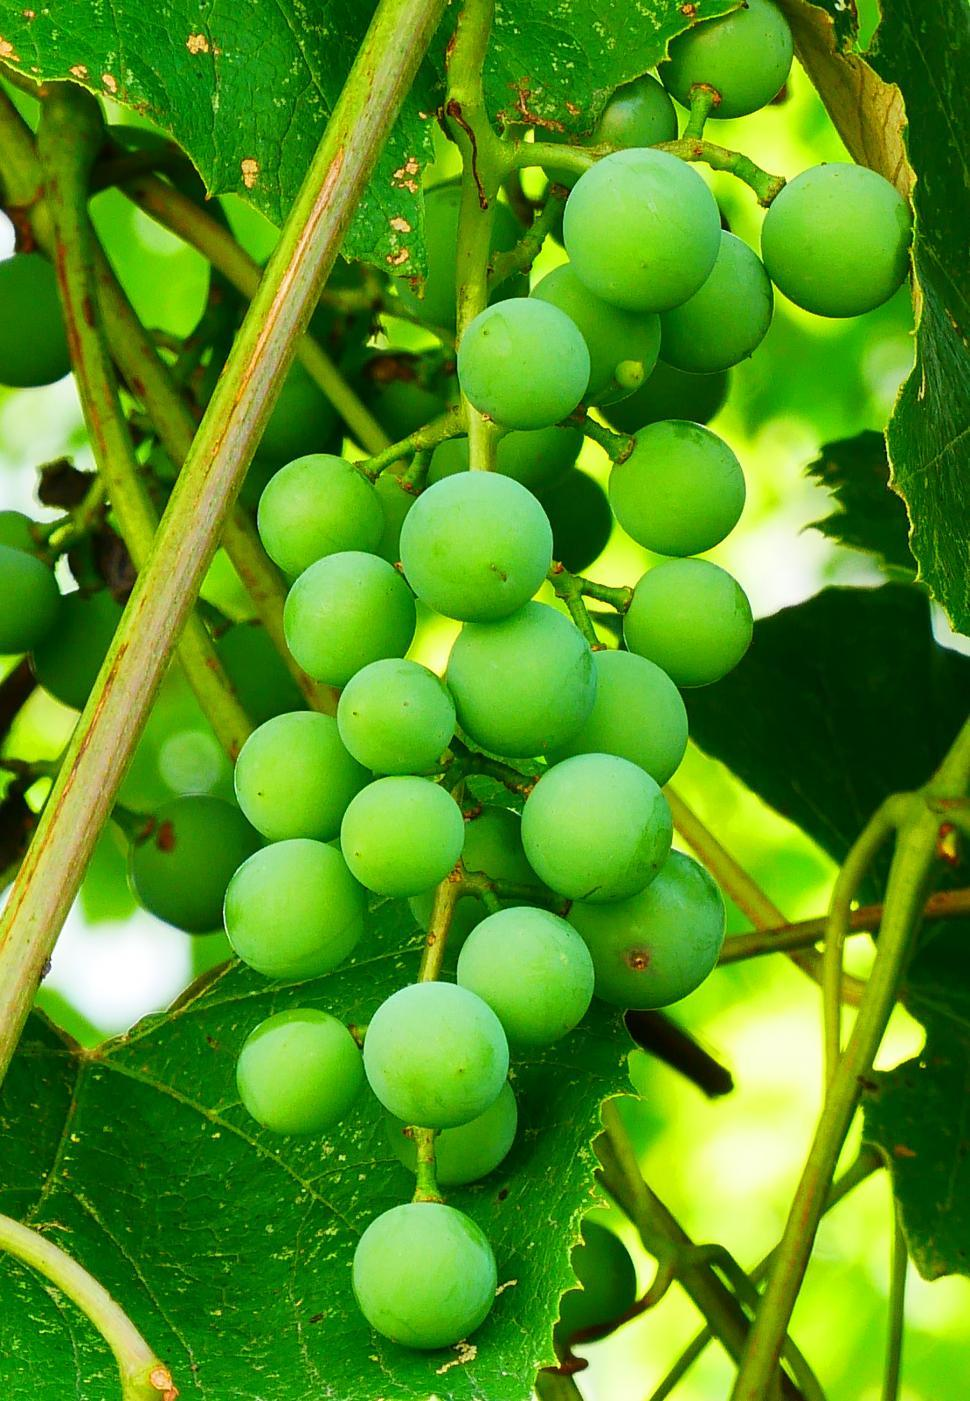 Download Free Stock Photo of Immature Concord Grapes on Vine